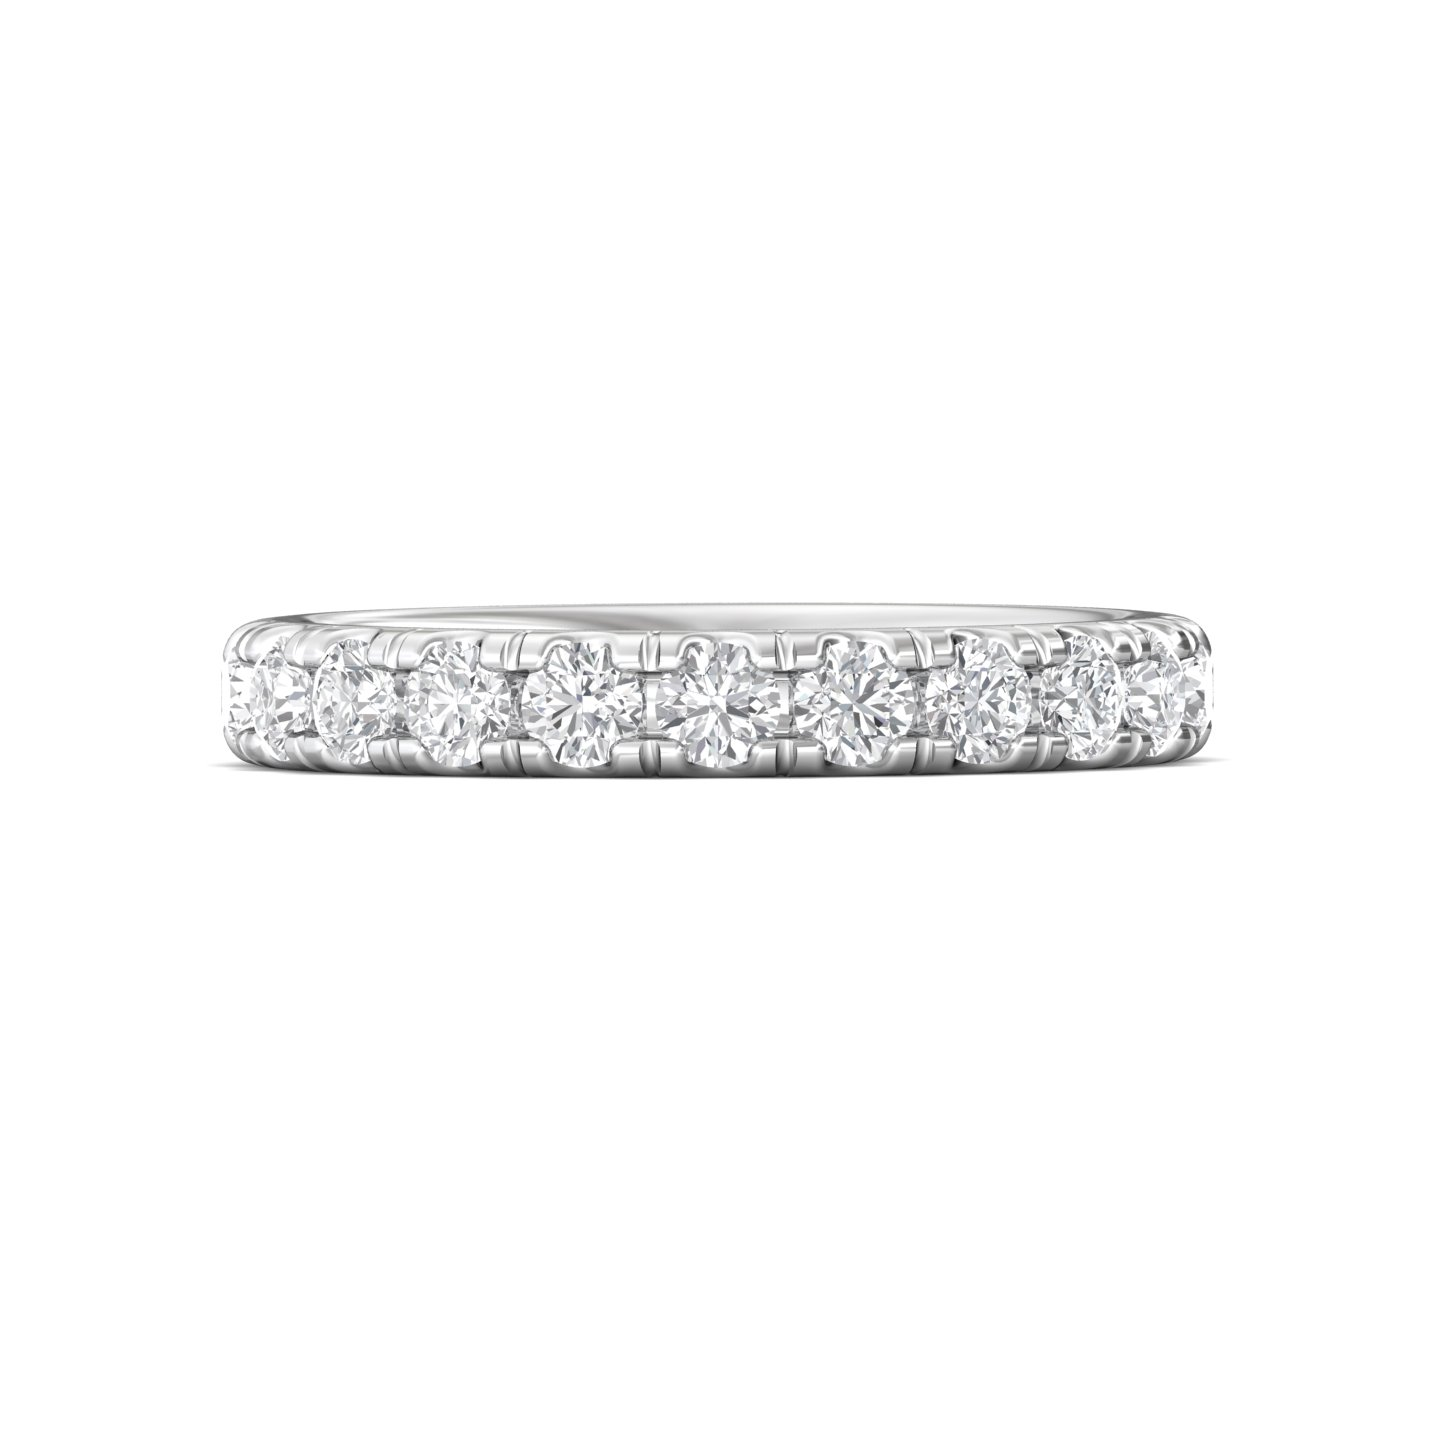 14K White Gold FlyerFit Micropave Cutdown Wedding Band Grogan Jewelers Florence, AL